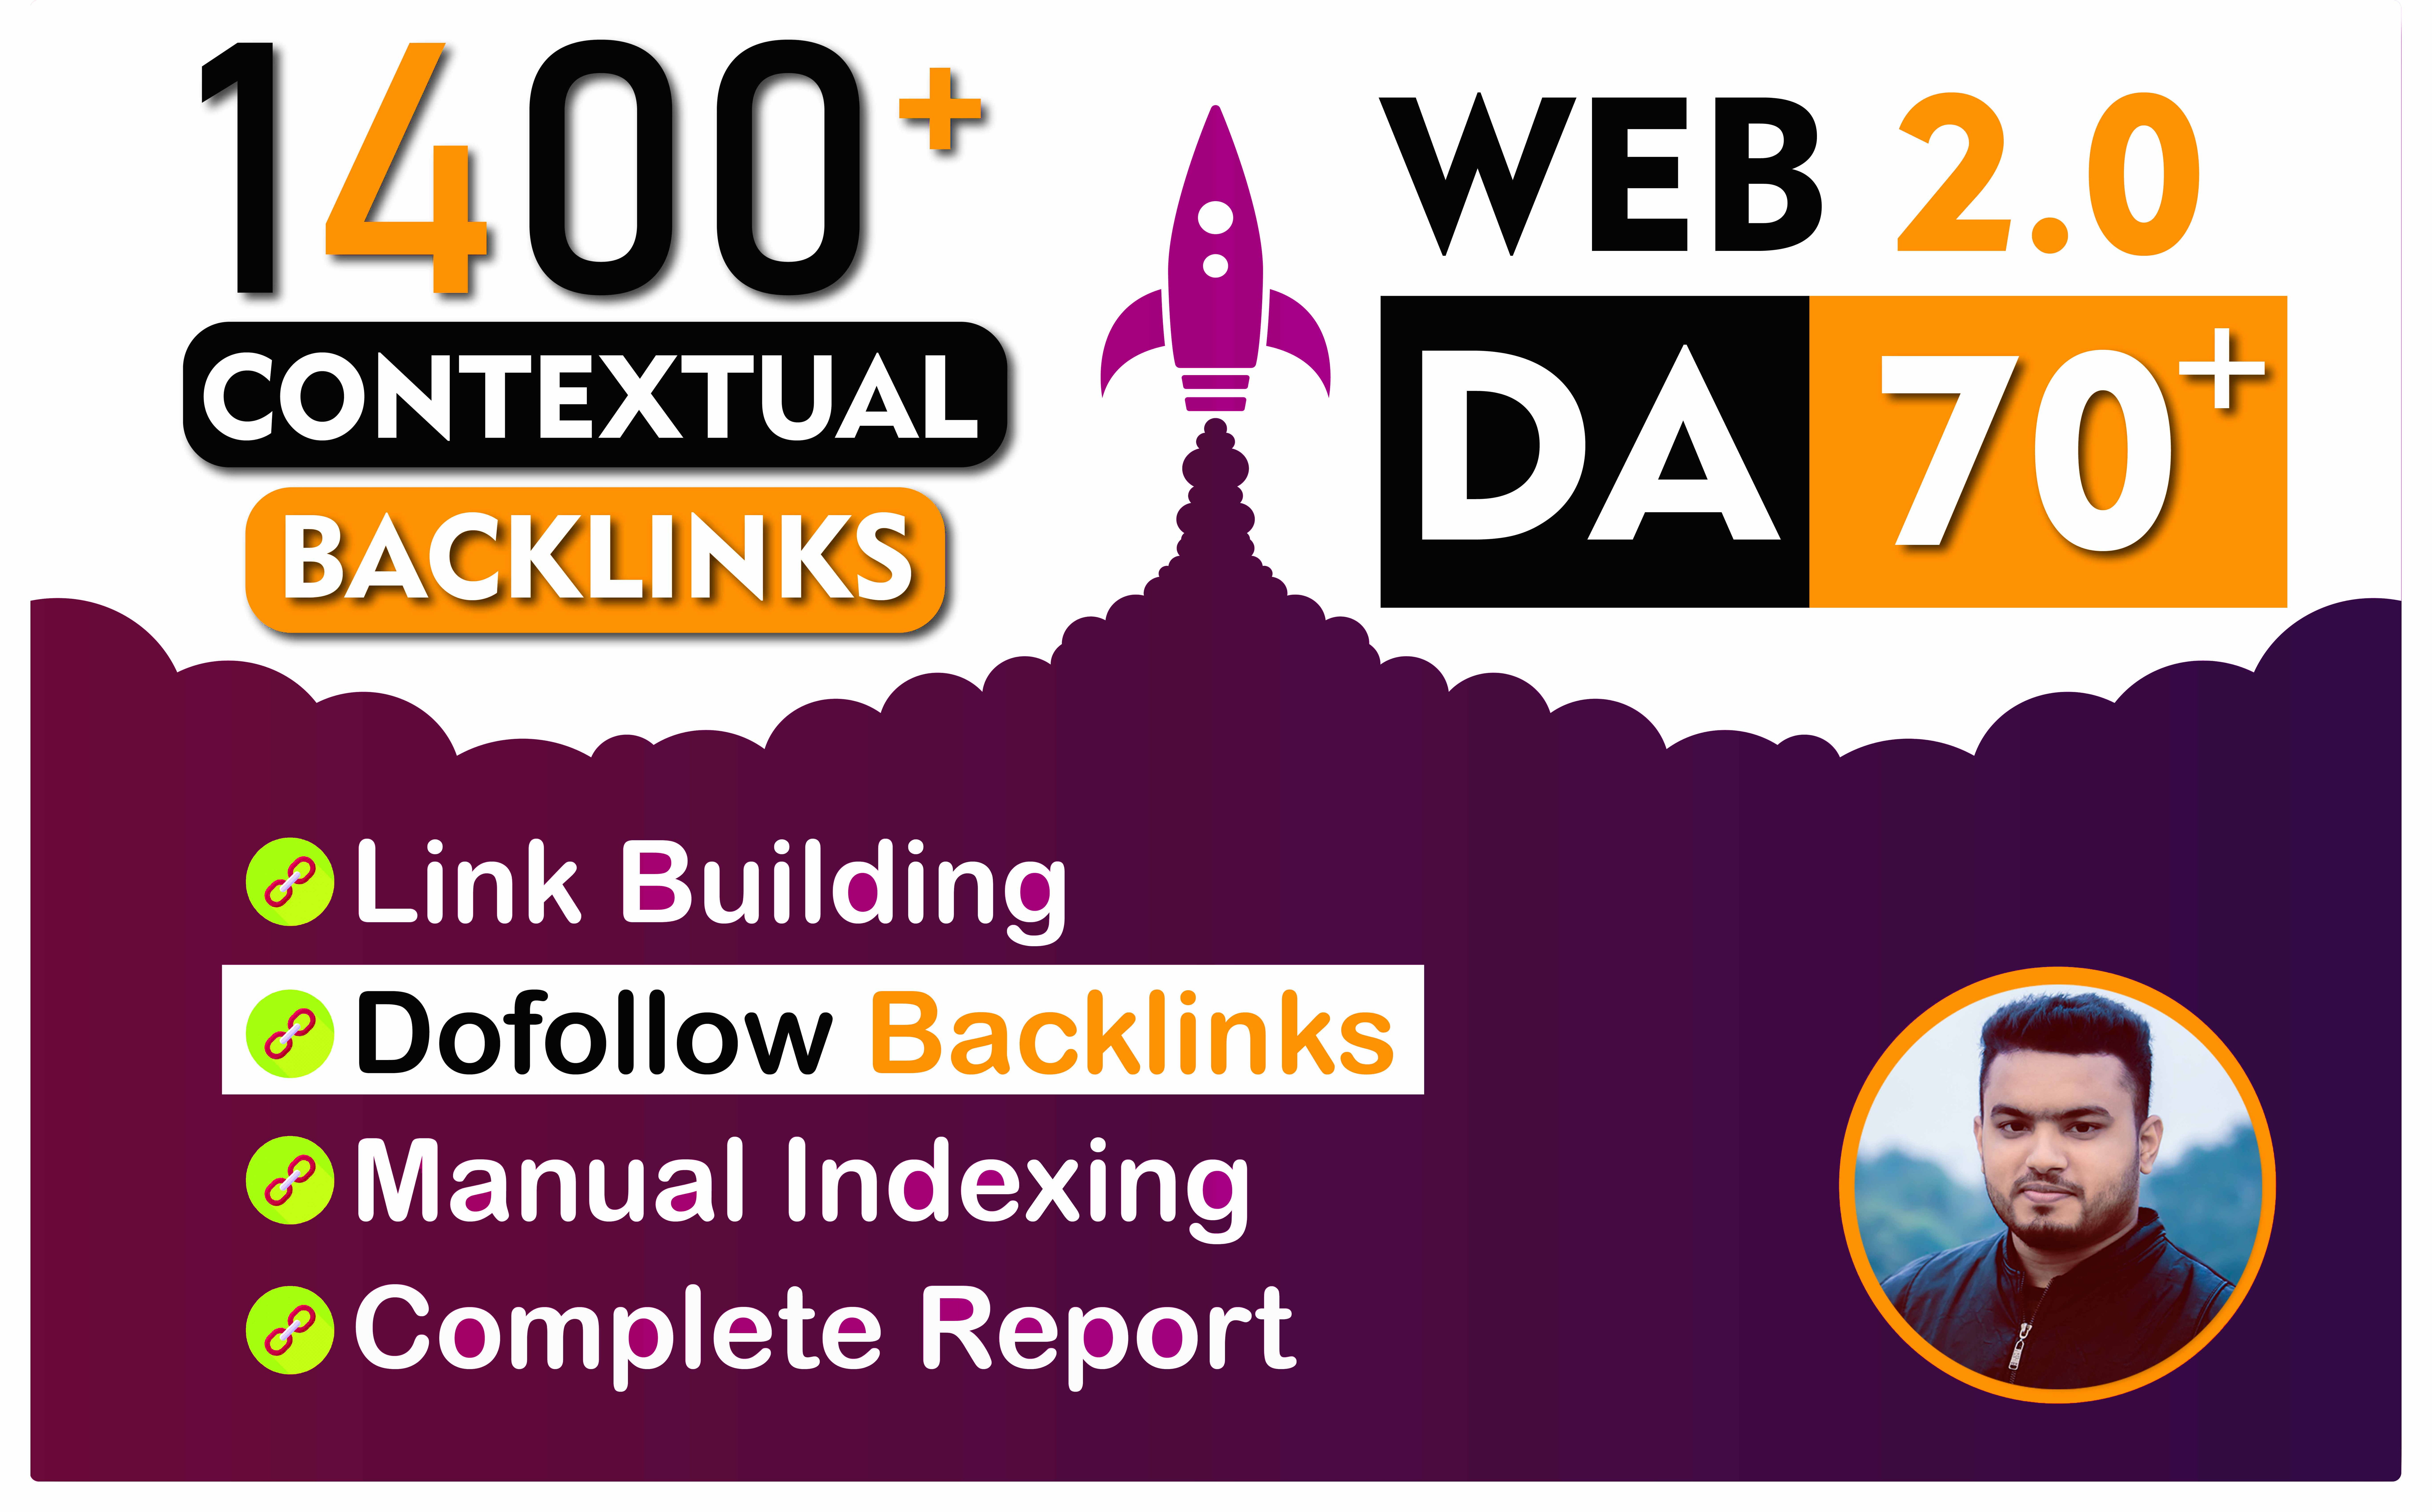 1400+ Contextual/PBN Backlinks with Millions of Traffic all over the world